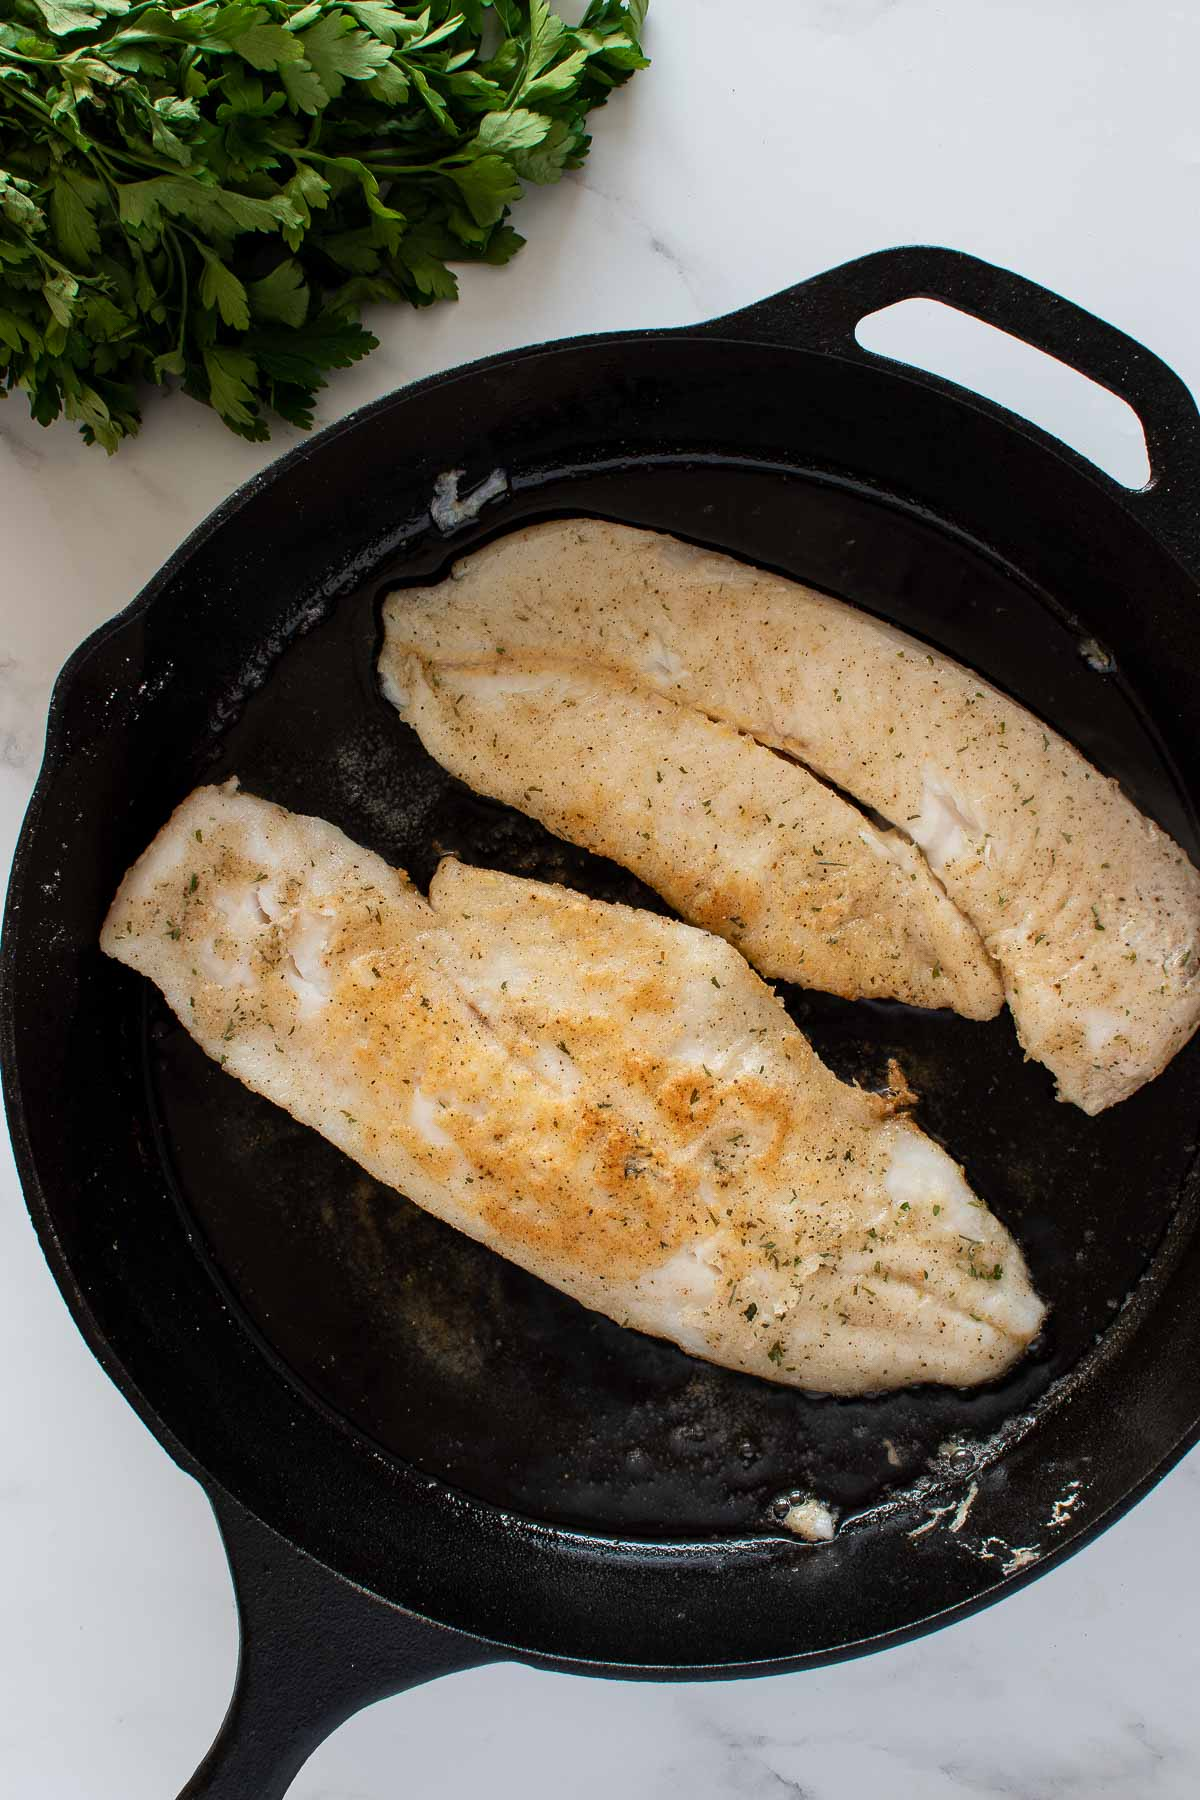 Pan seared hake in a cast iron skillet.